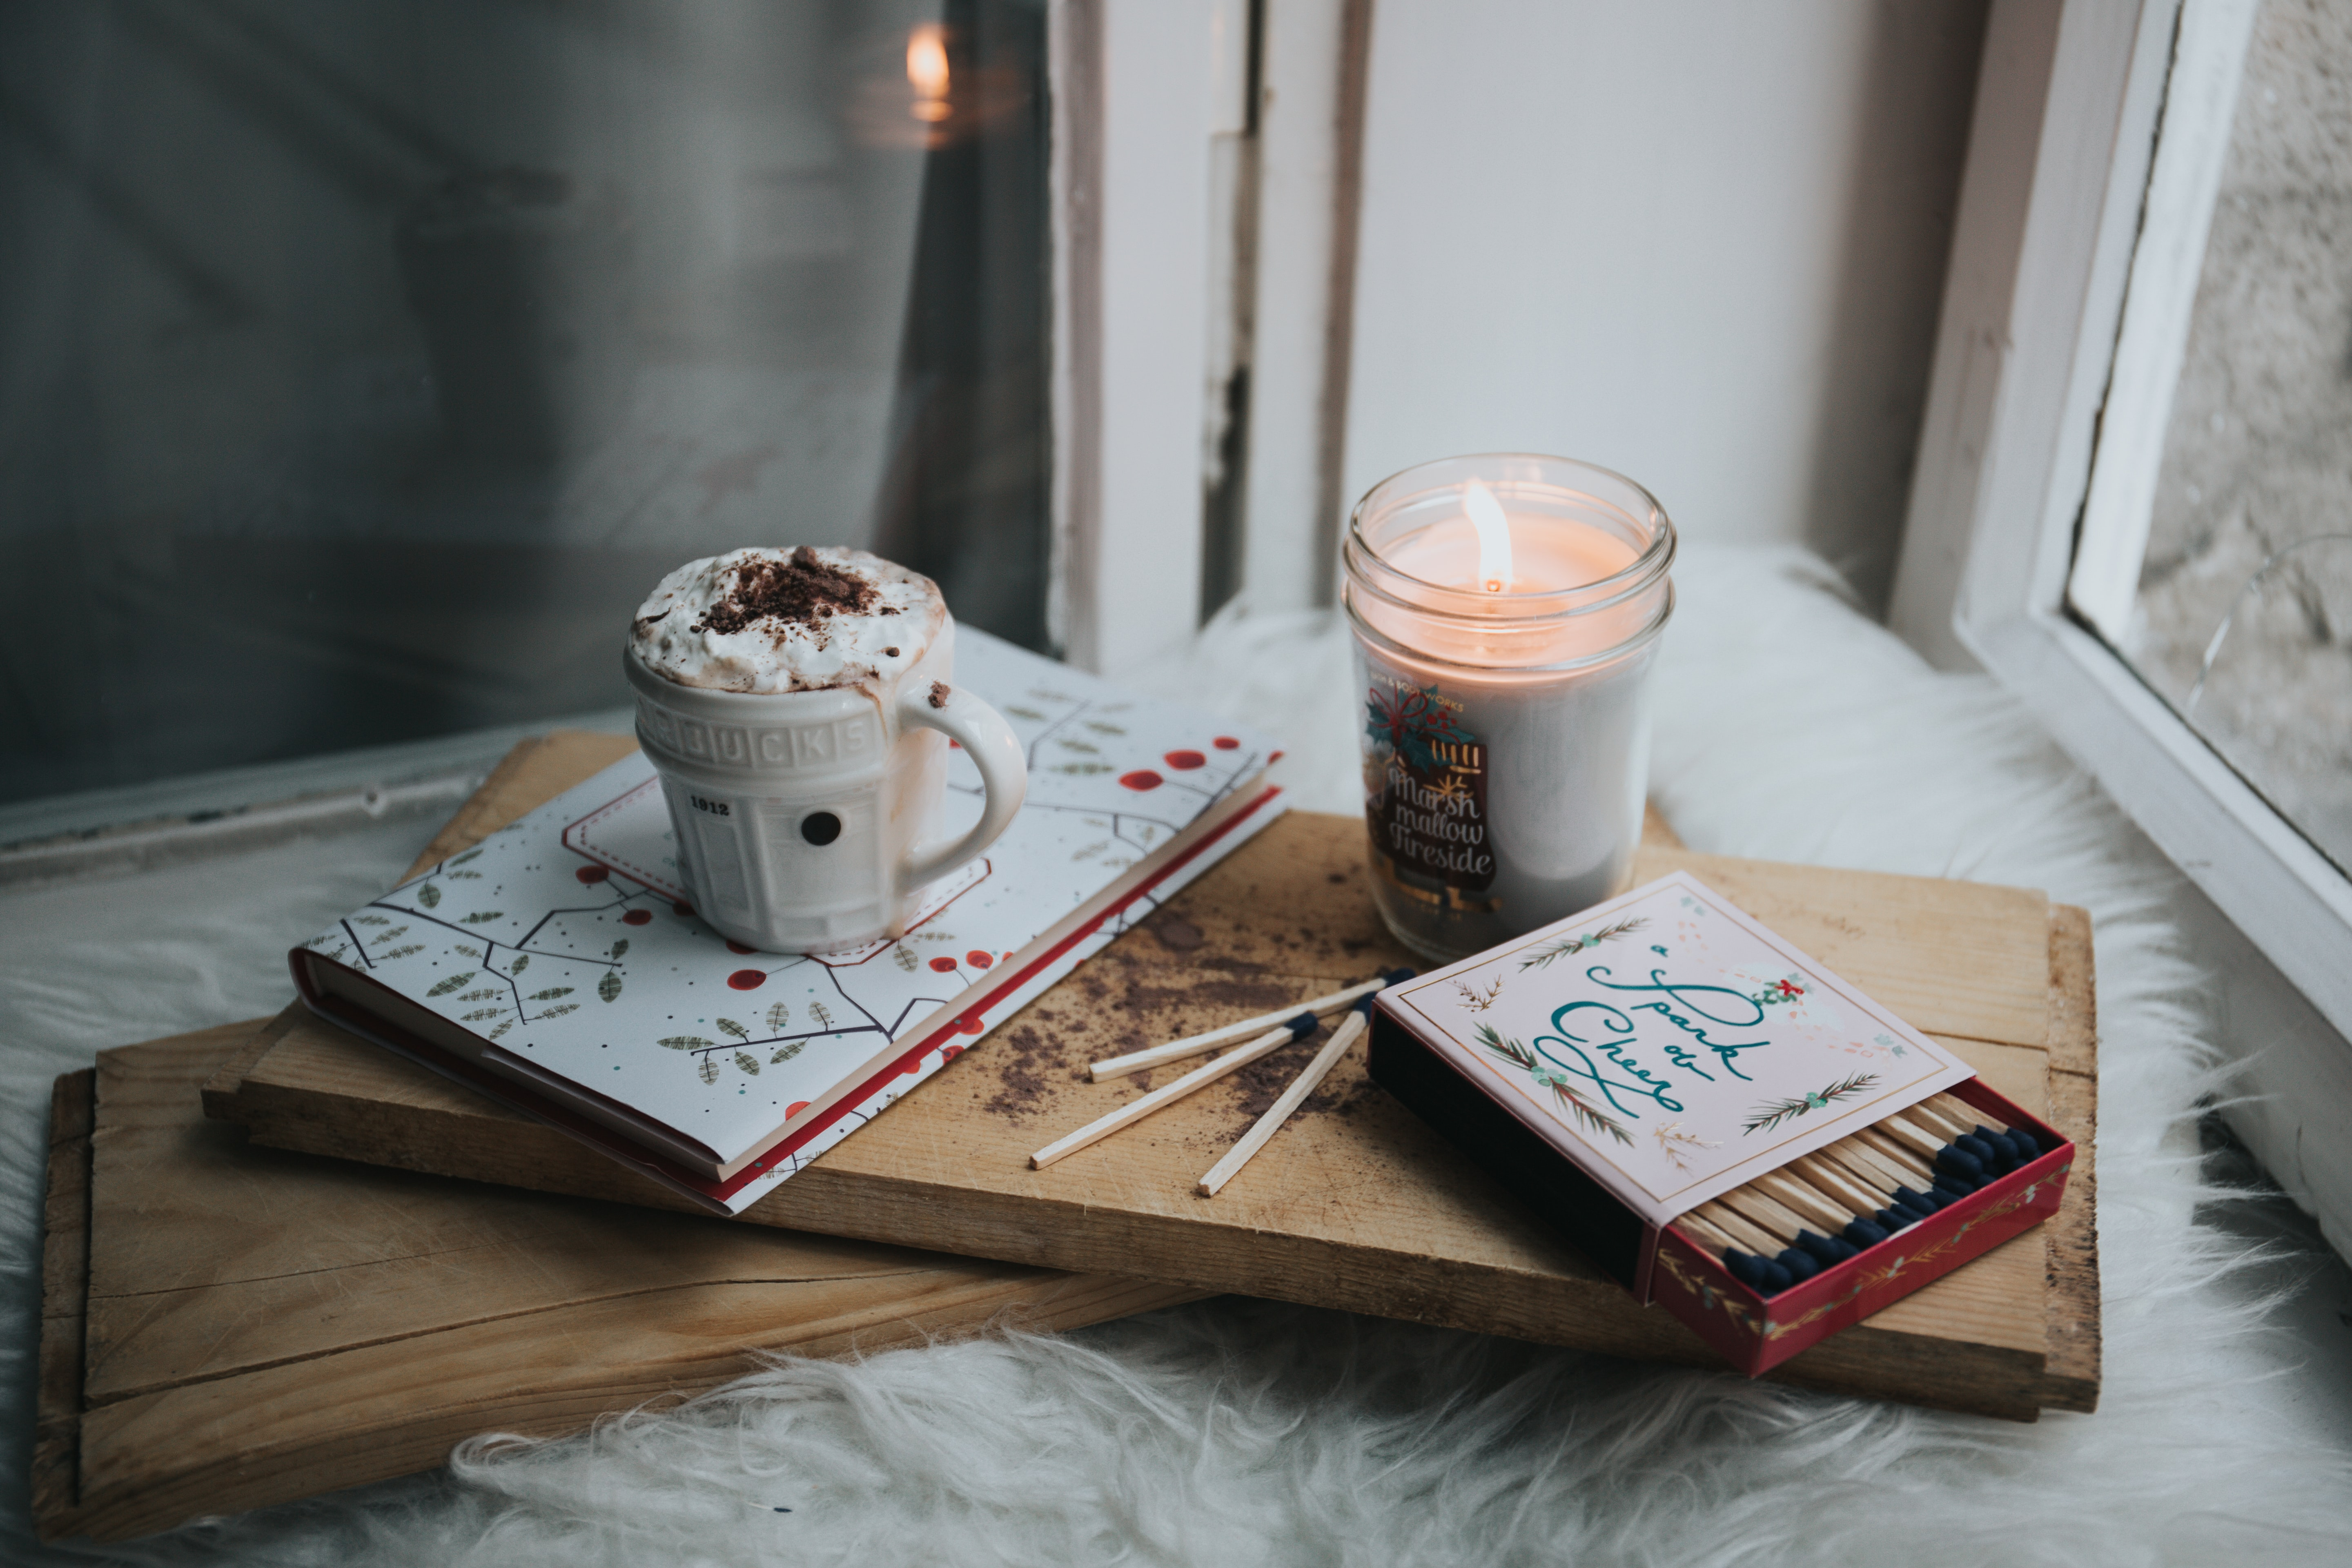 Books on a piece of wood, with a hot drink and candle on top.